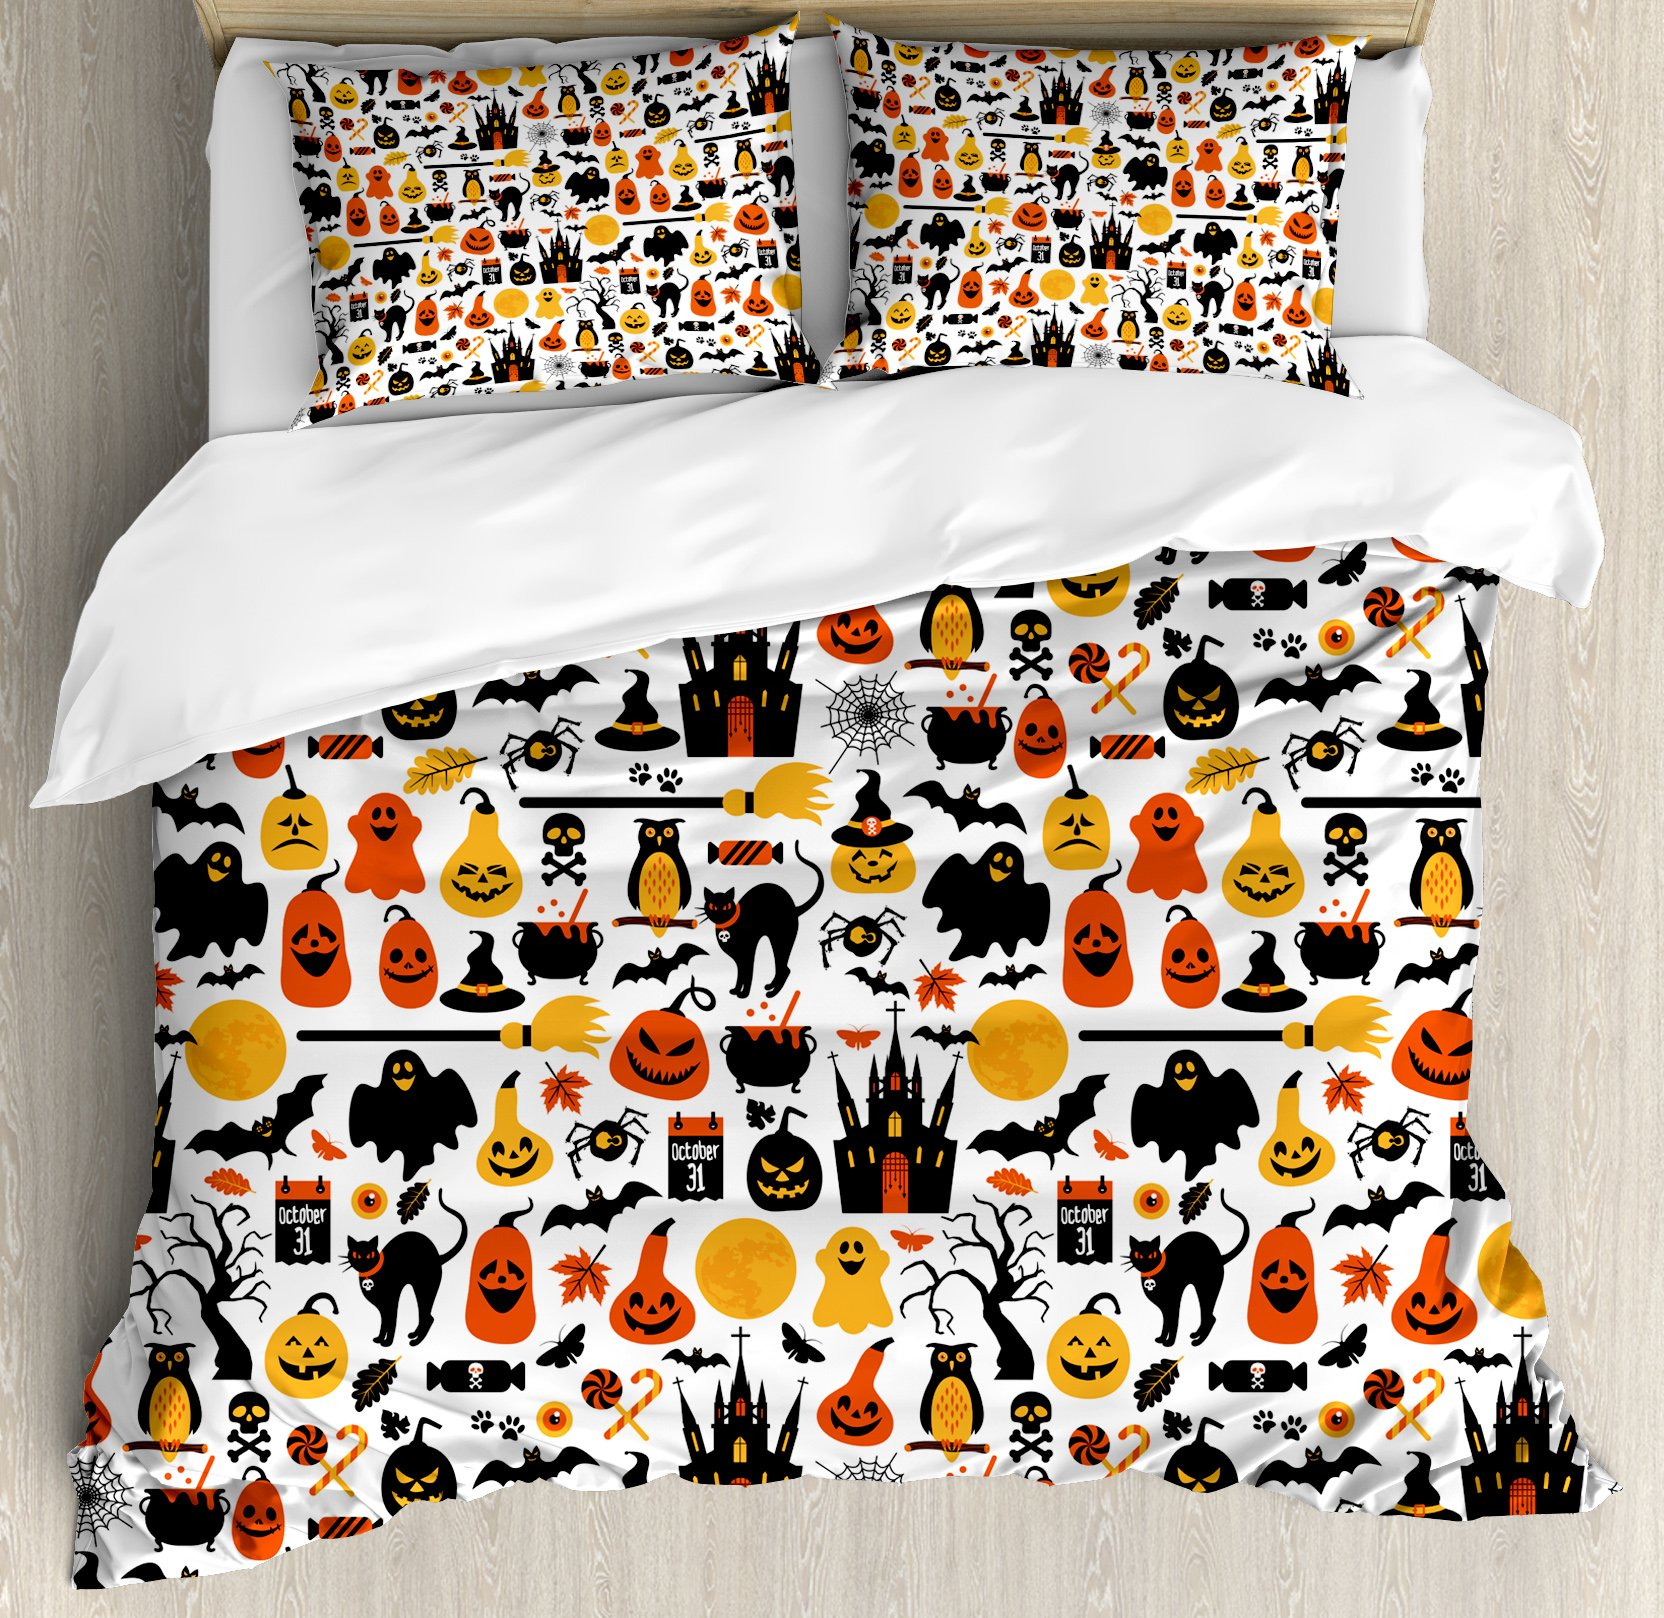 Ambesonne Halloween Duvet Cover Set King Size, Halloween Icons Collection Candies Owls Castles Ghosts October 31 Theme, Decorative 3 Piece Bedding Set with 2 Pillow Shams, Orange Yellow Black